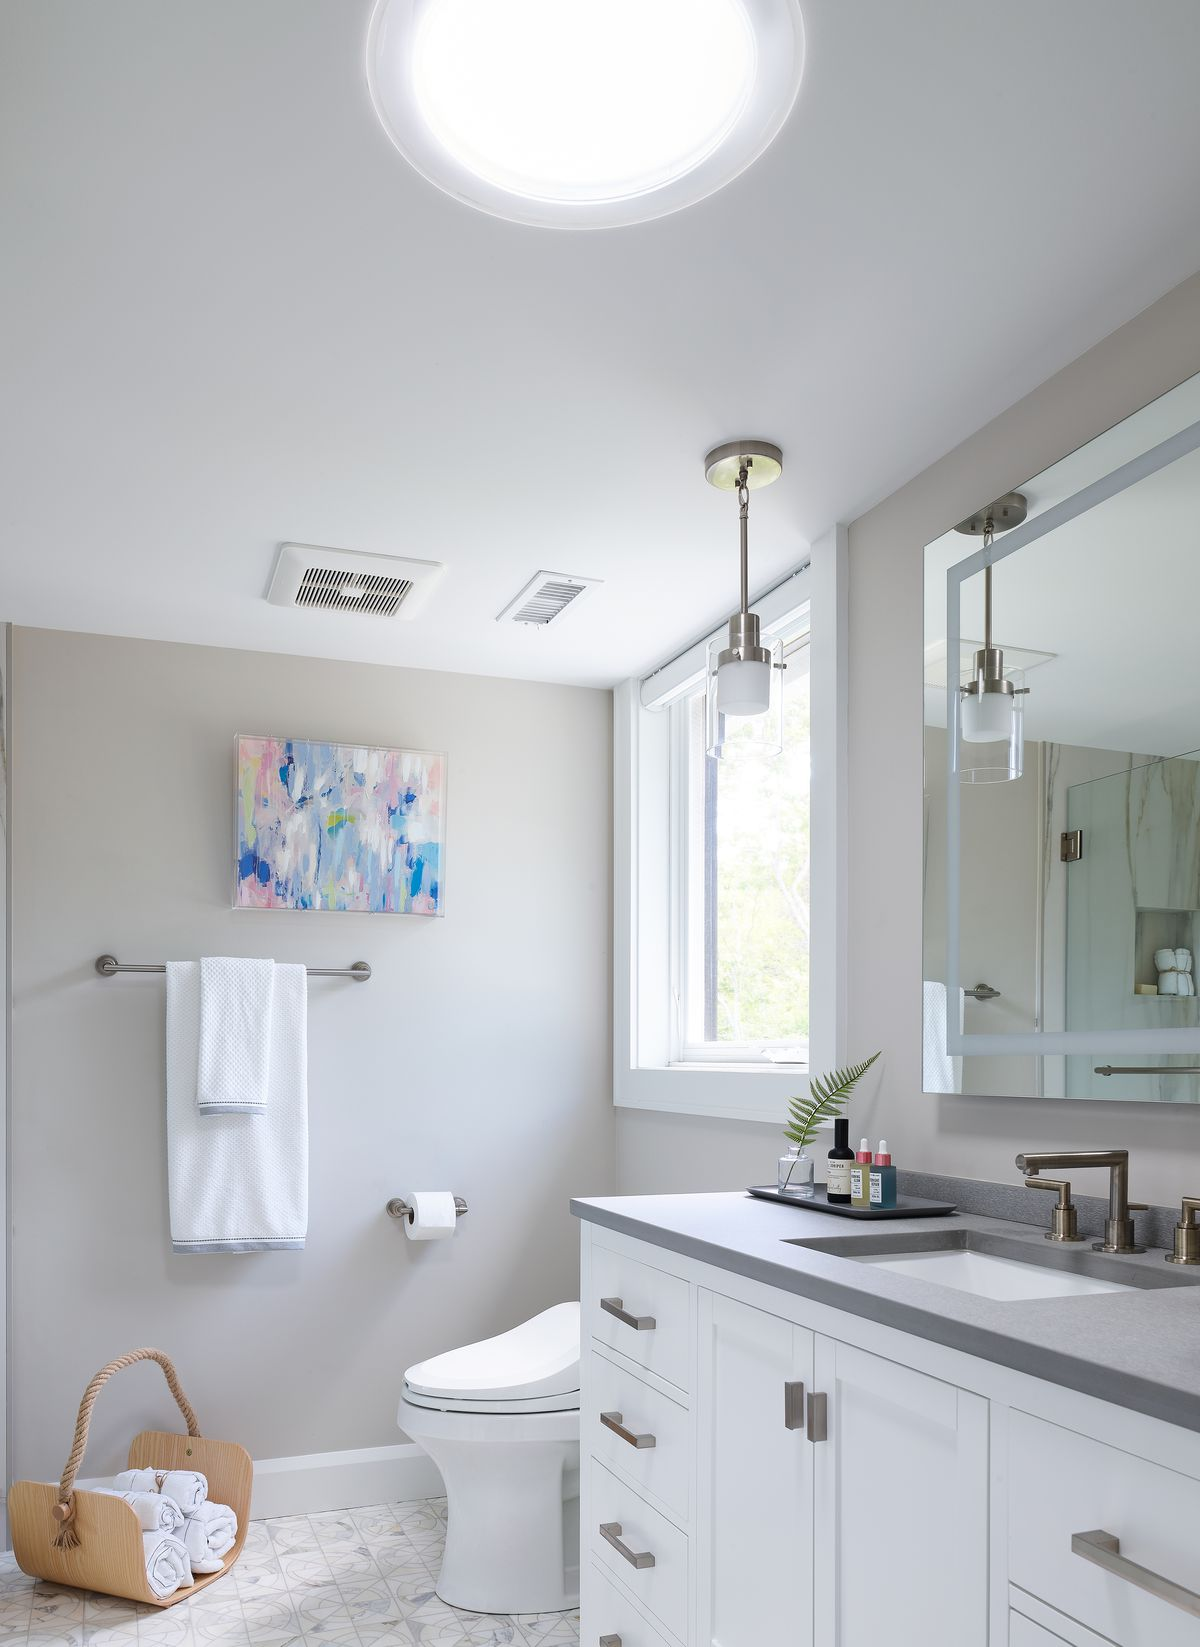 Velux light tube in bathroom.